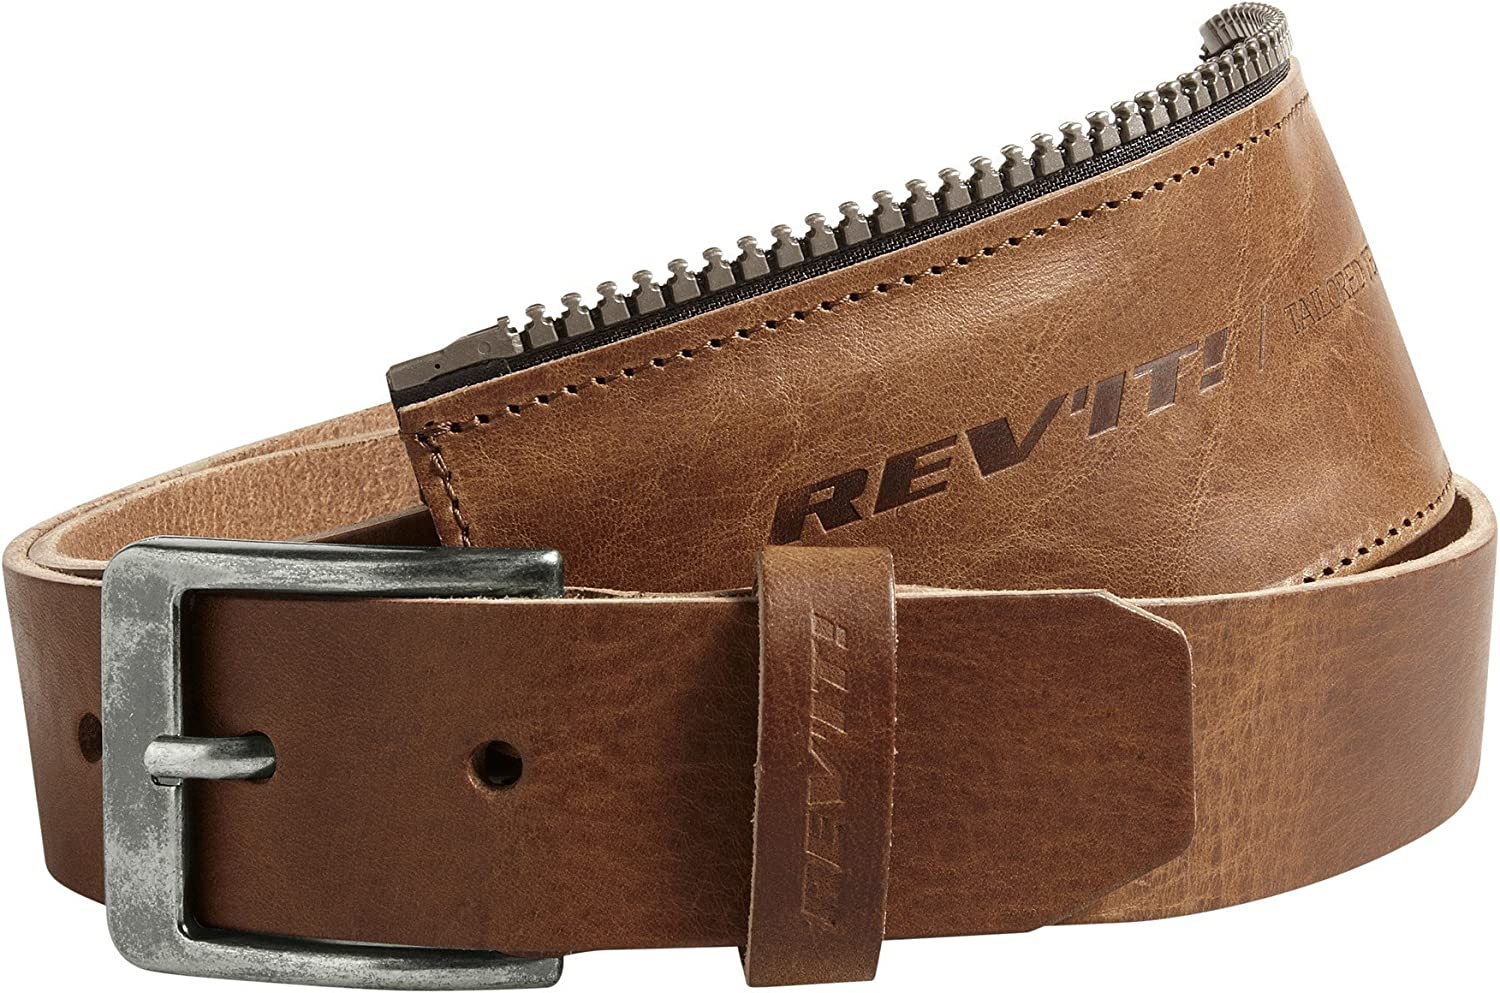 biker belt Revit belt Safeway 2 motorcycle belt with connection zipper